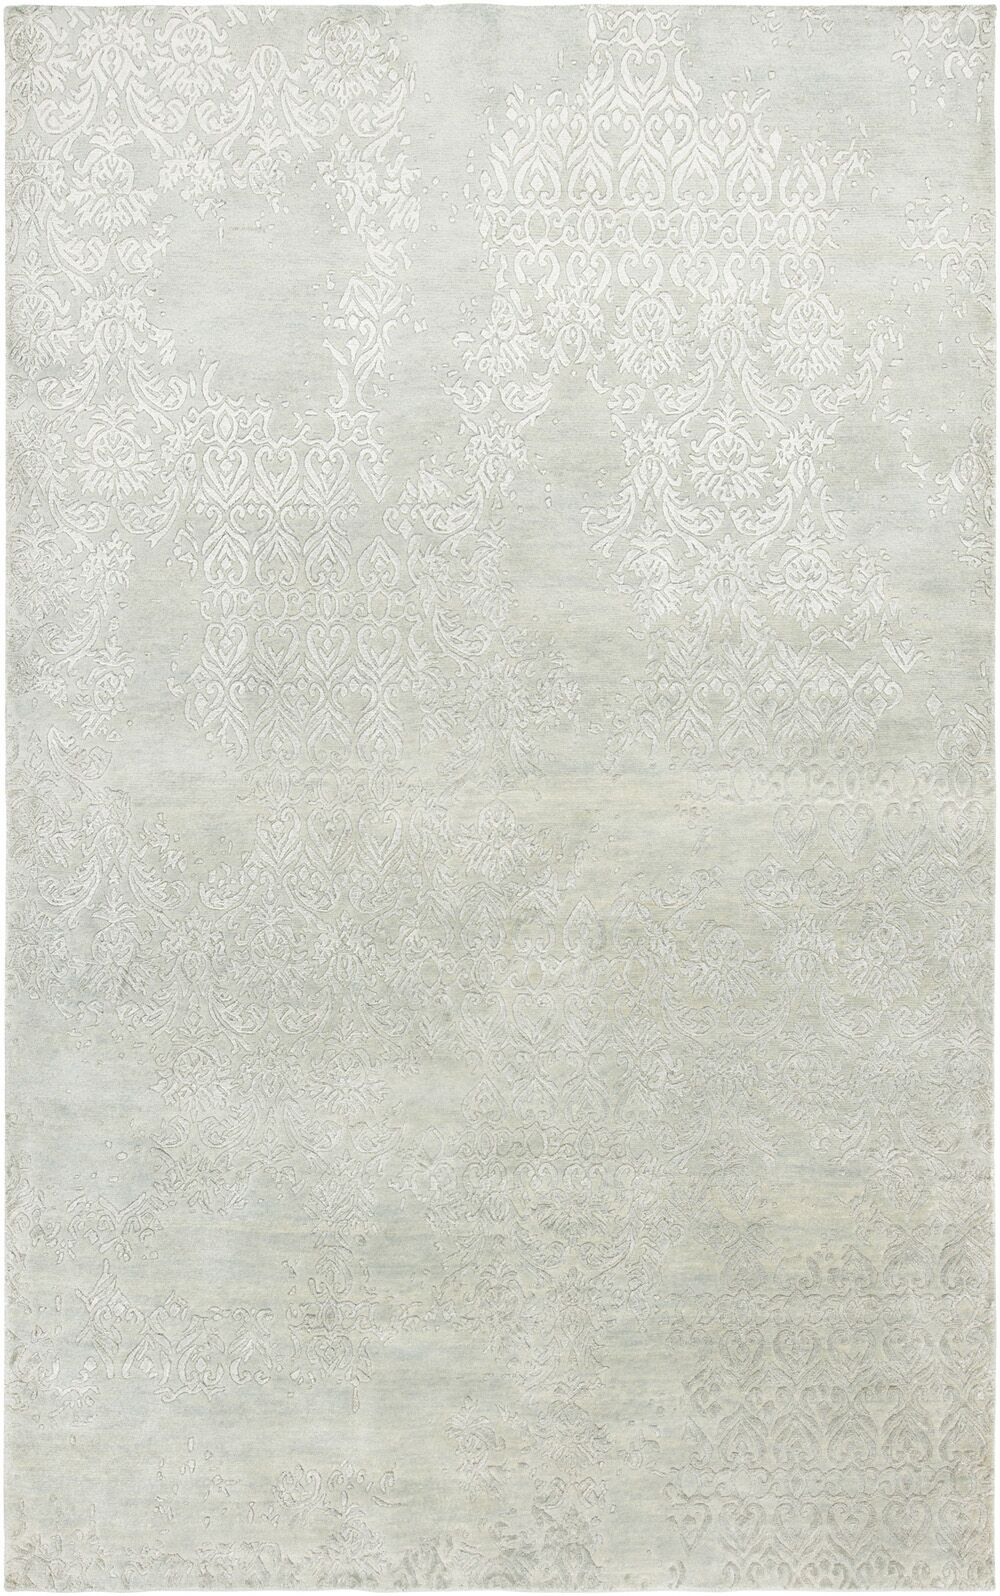 Vijayapura Hand-Knotted Light Blue Area Rug Rug Size: Runner 2'6